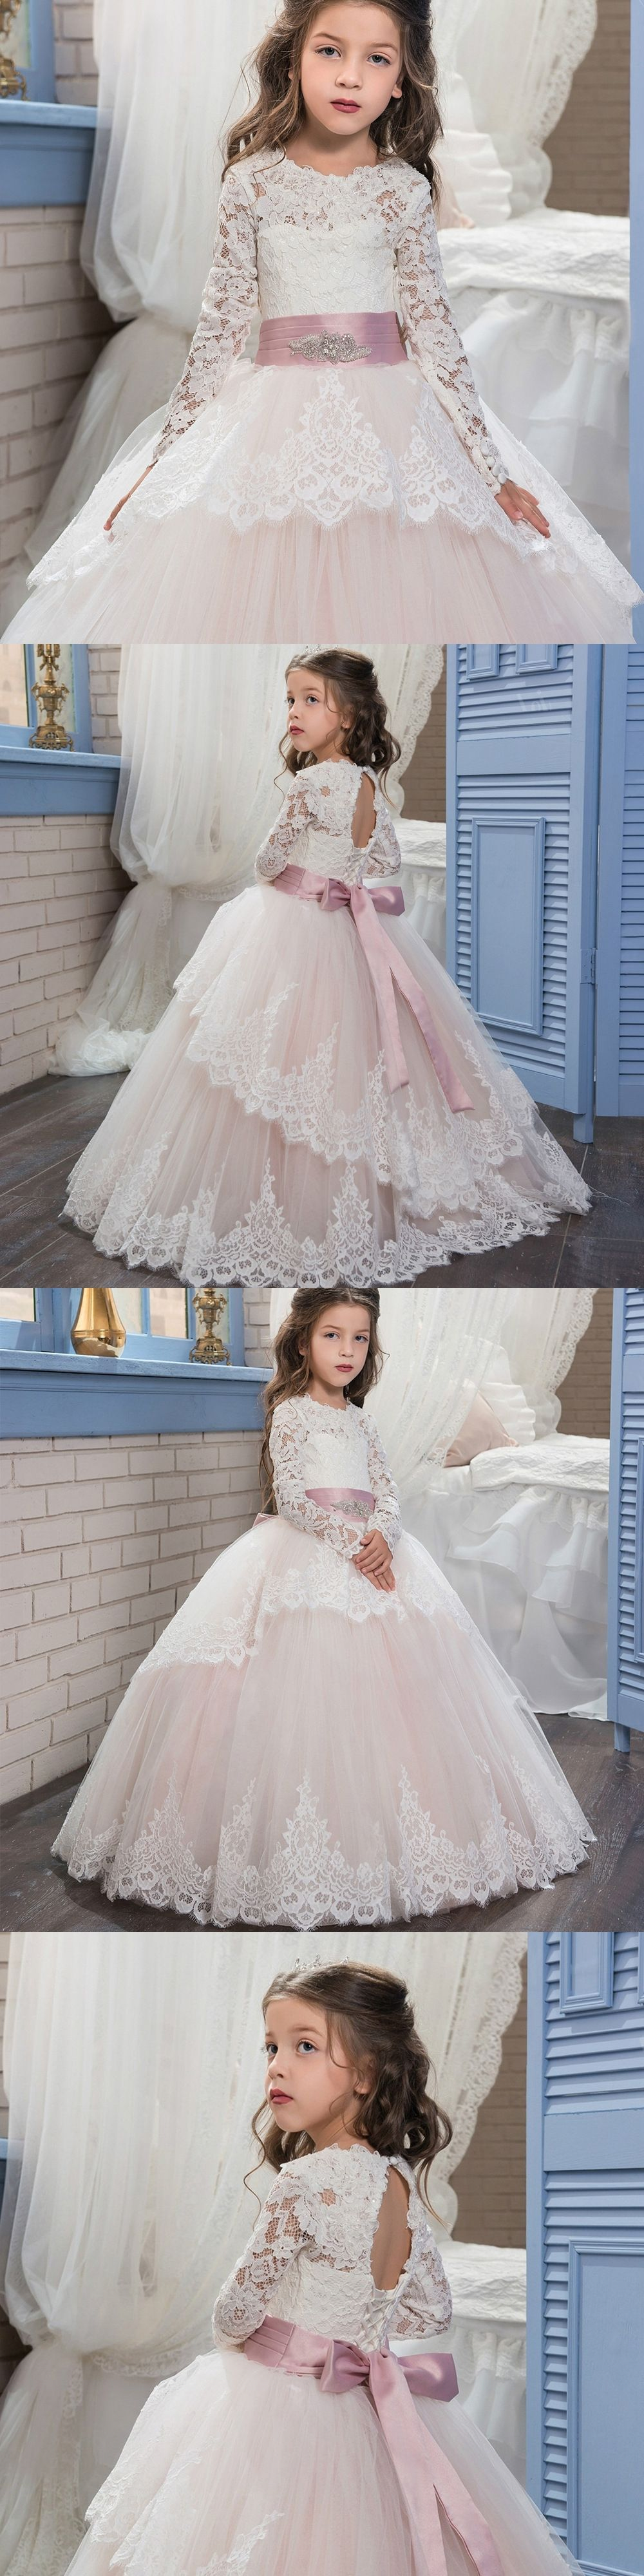 Cute Dresses for 12 Year Olds Dresses Girls Kids 10 Years Evening Dress  2017 High Quality Imported Party Long White Dress 2f5703438575